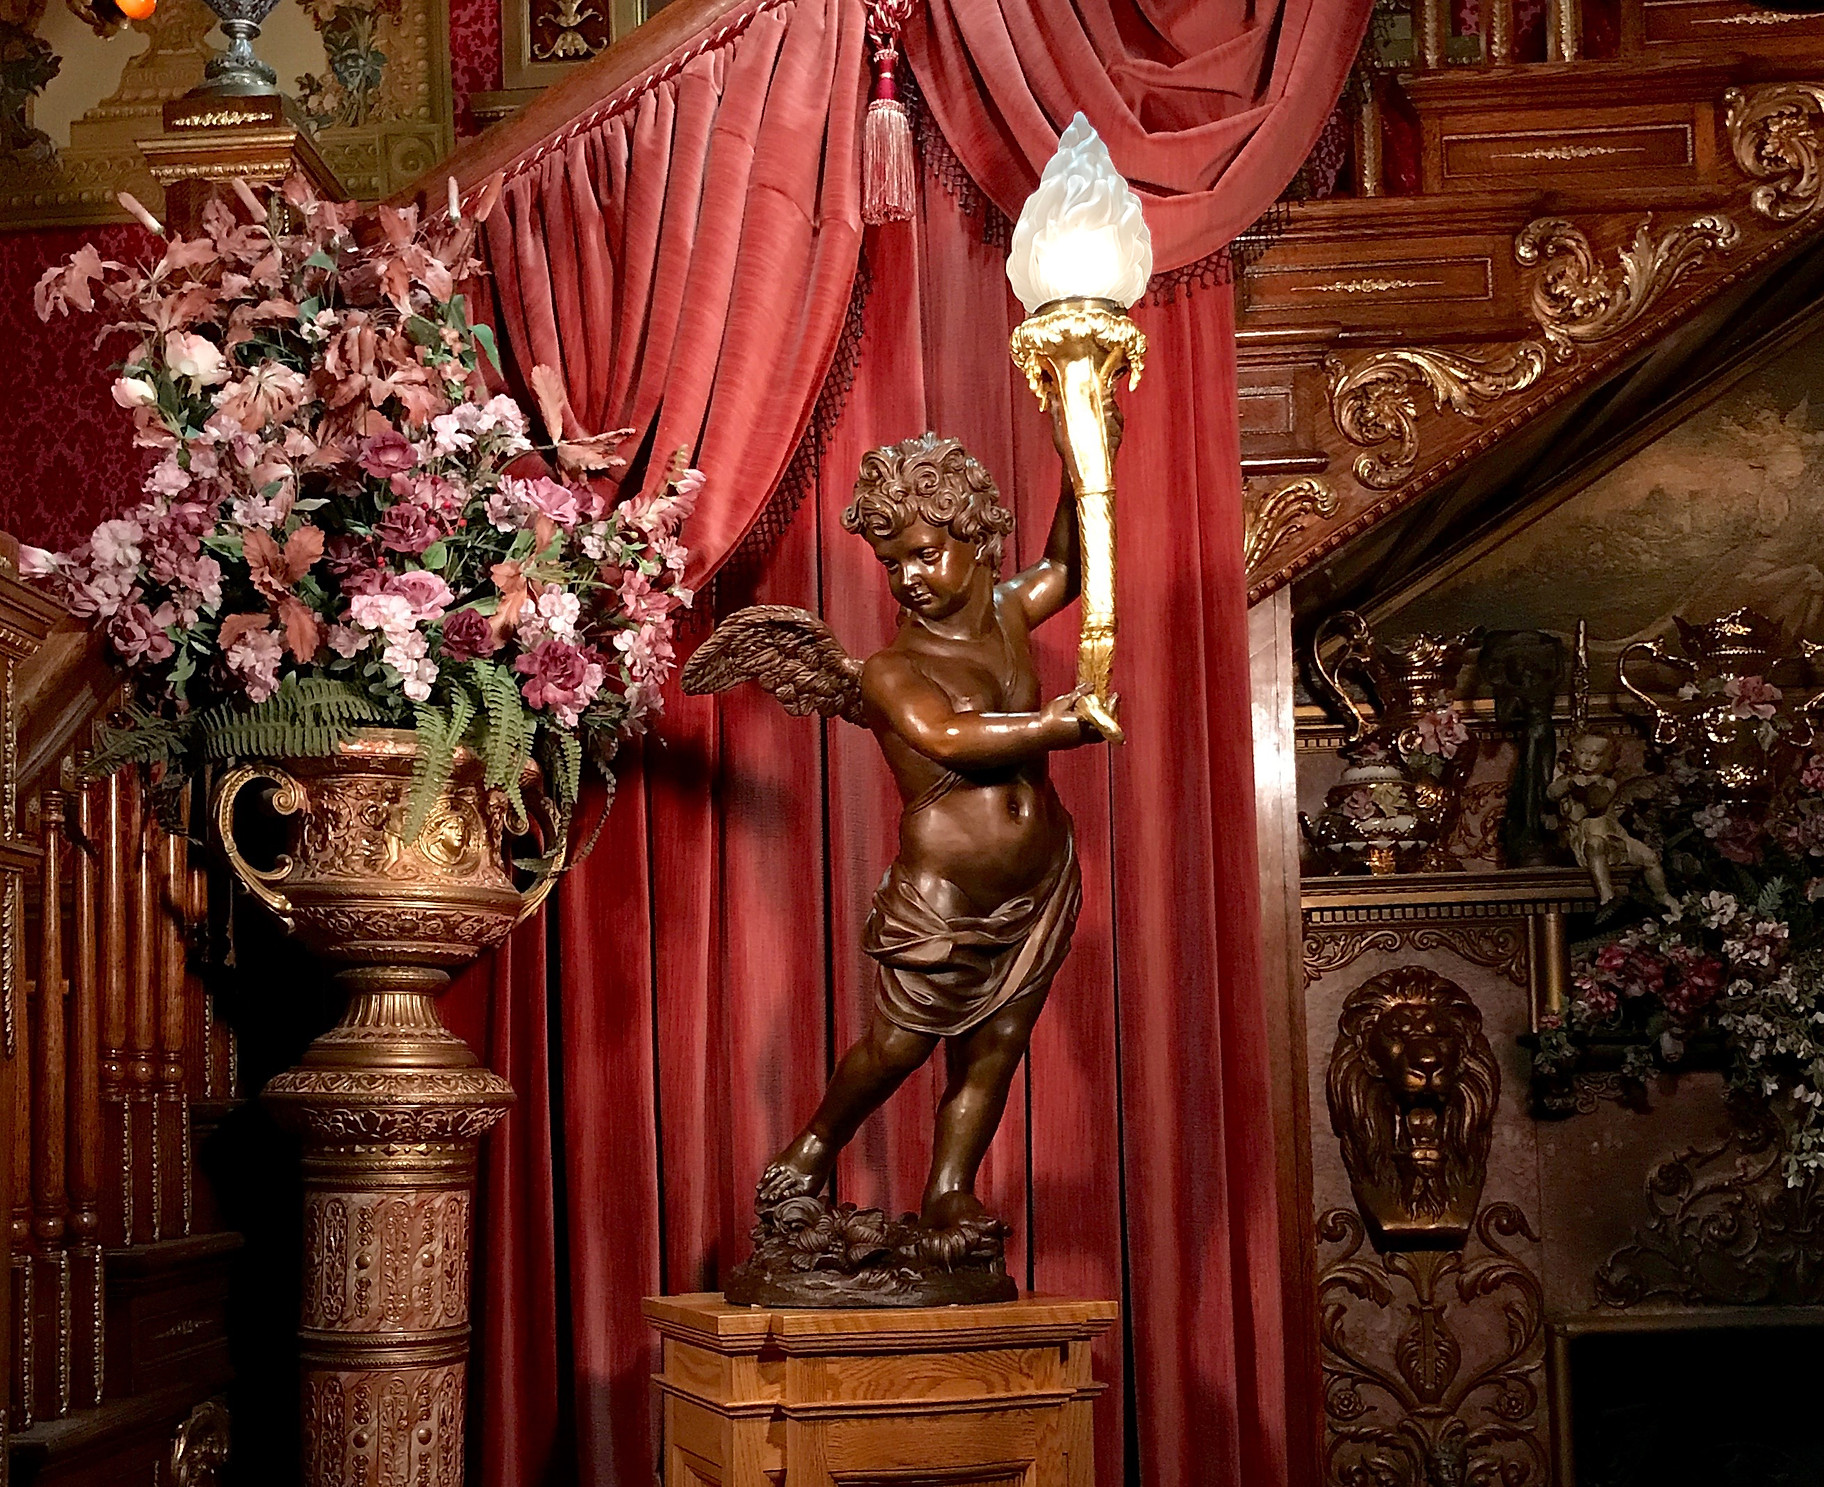 RMS Titanic bronze cherub lamp replica with 24 karat gold torch